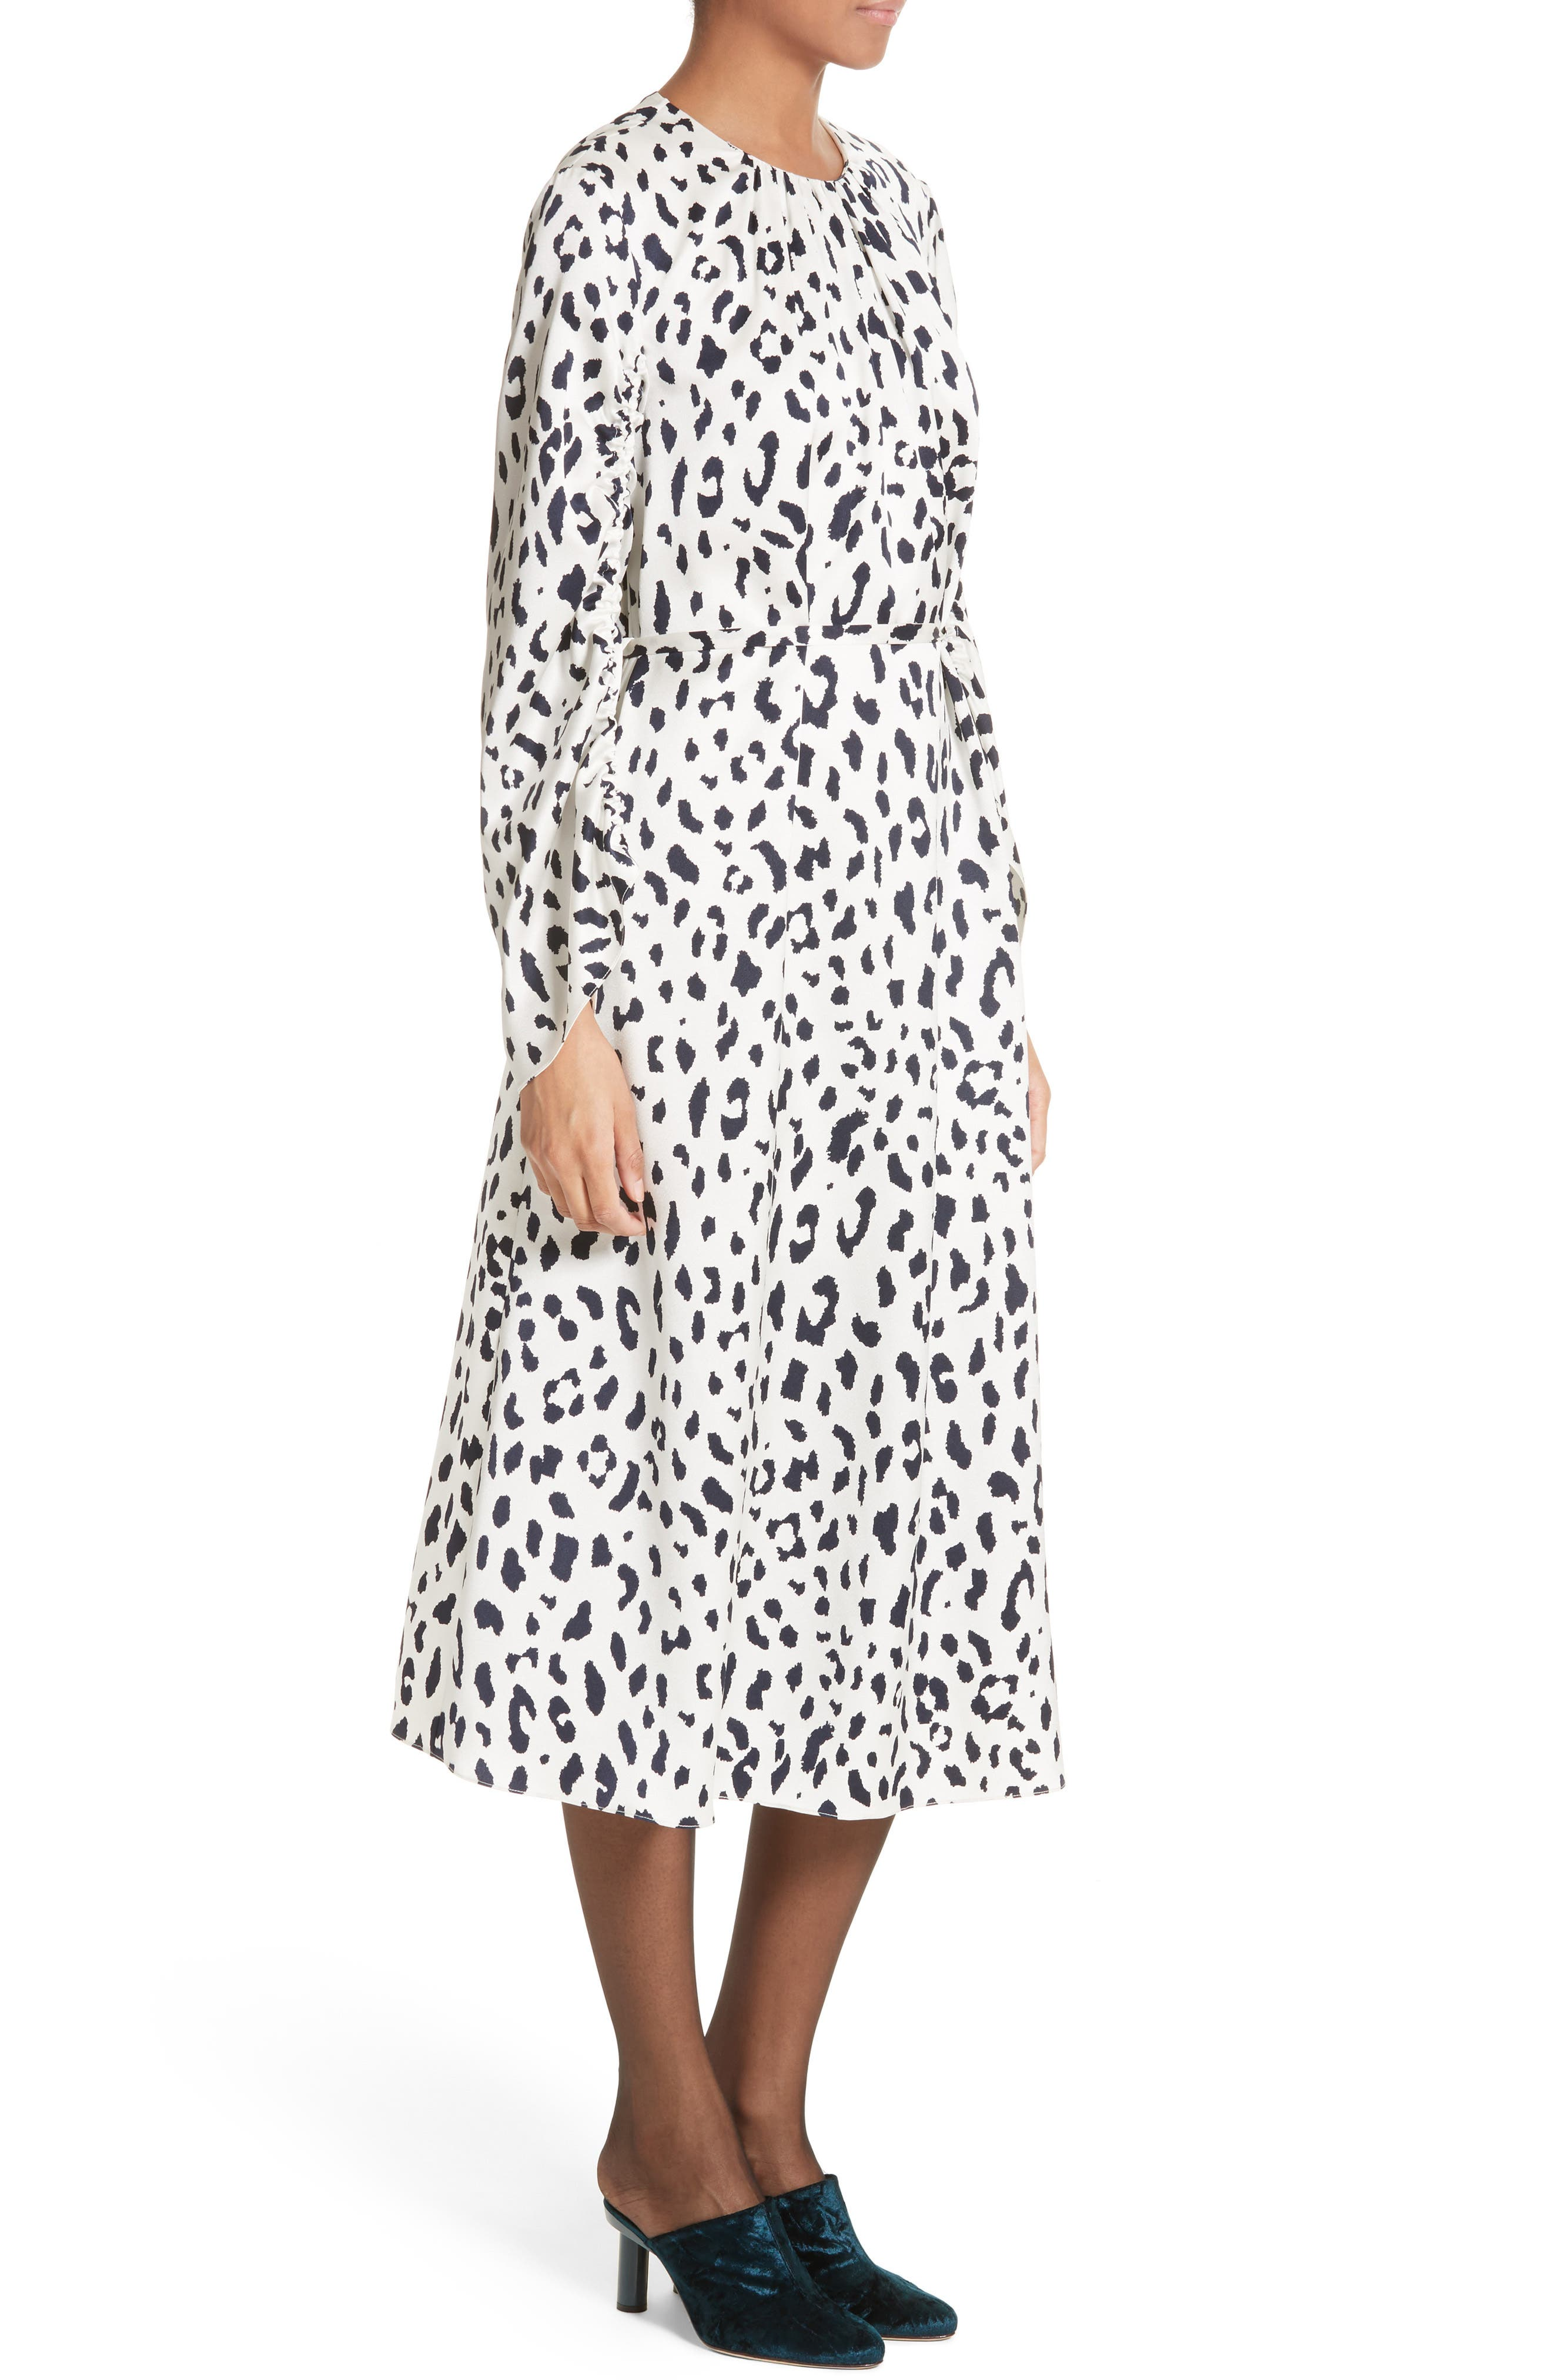 Cheetah Satin Dress,                             Alternate thumbnail 3, color,                             900